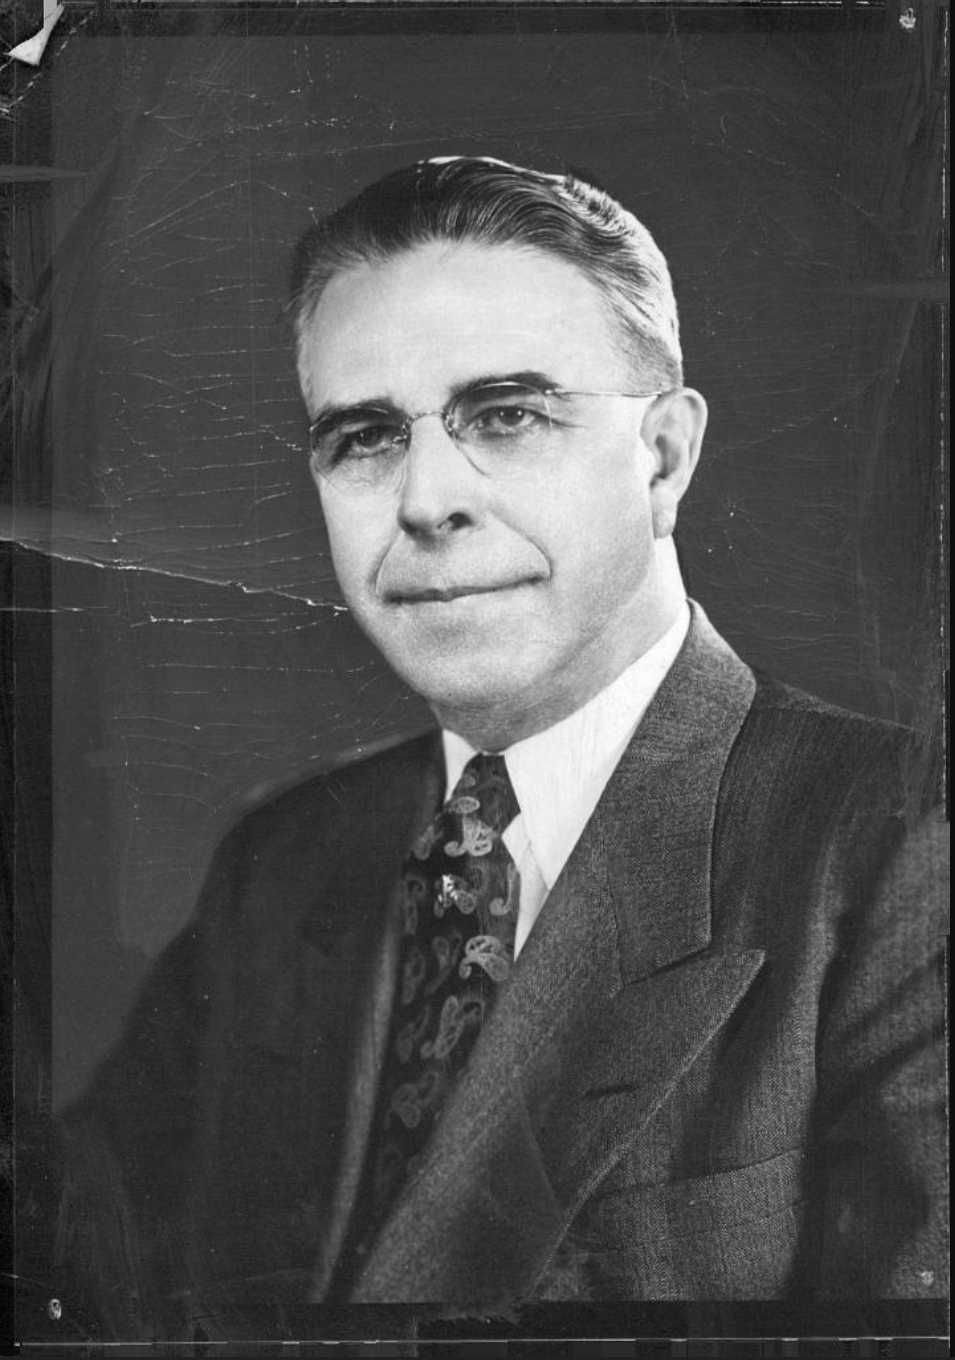 Rev. Leon Grubaugh